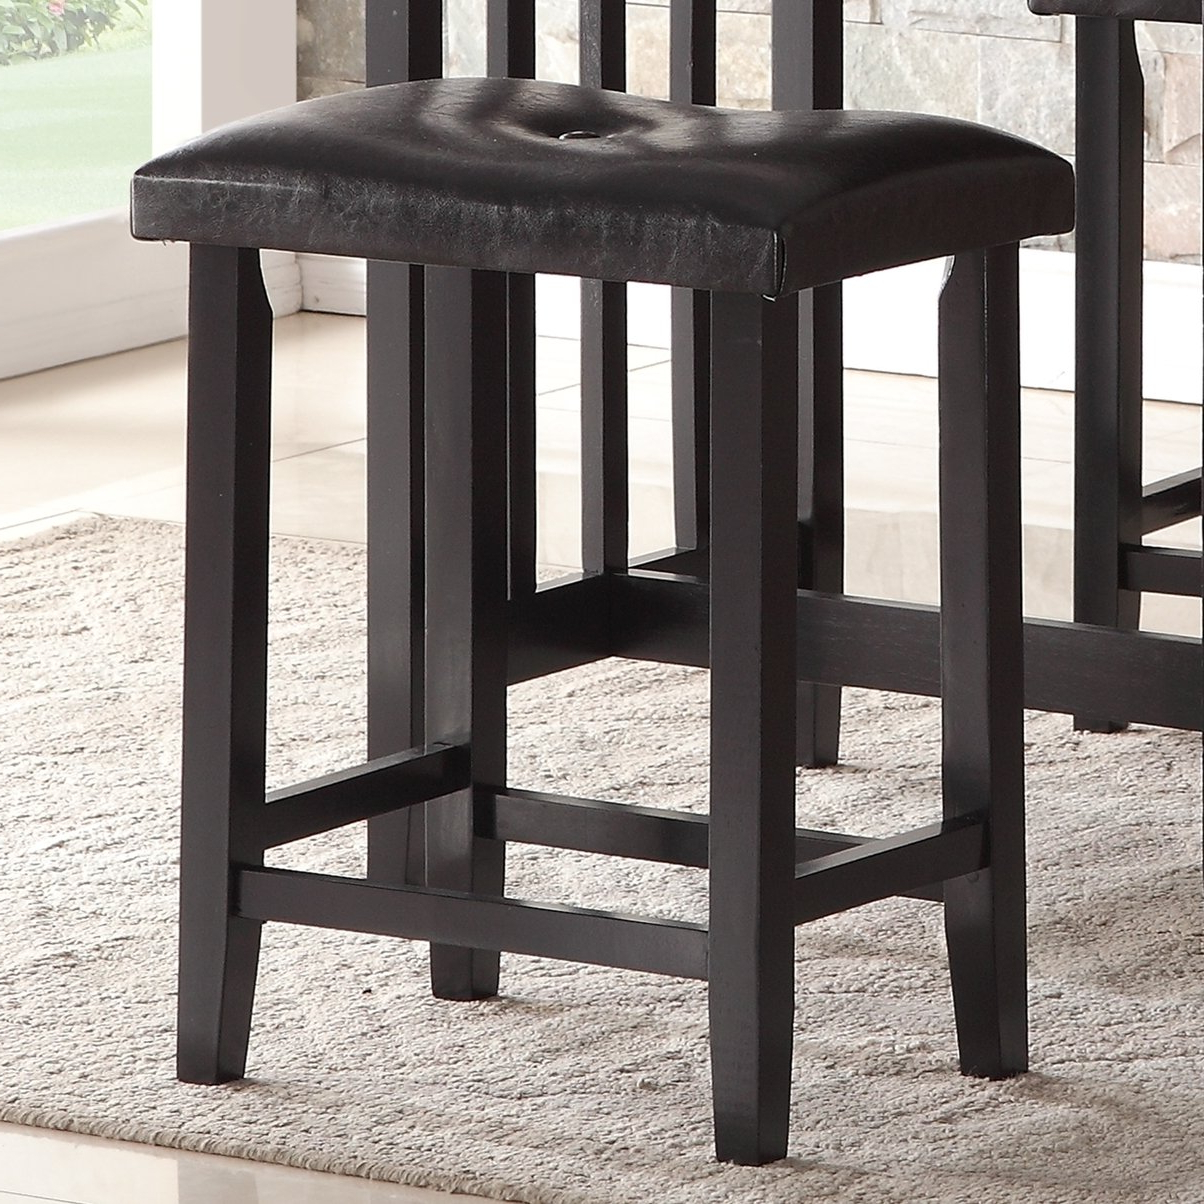 Moorehead 3 Piece Counter Height Dining Sets Intended For Most Popular Roundhill Furniture 3 Piece Counter Height Dining Set With Saddleback Stools, Black (View 10 of 20)